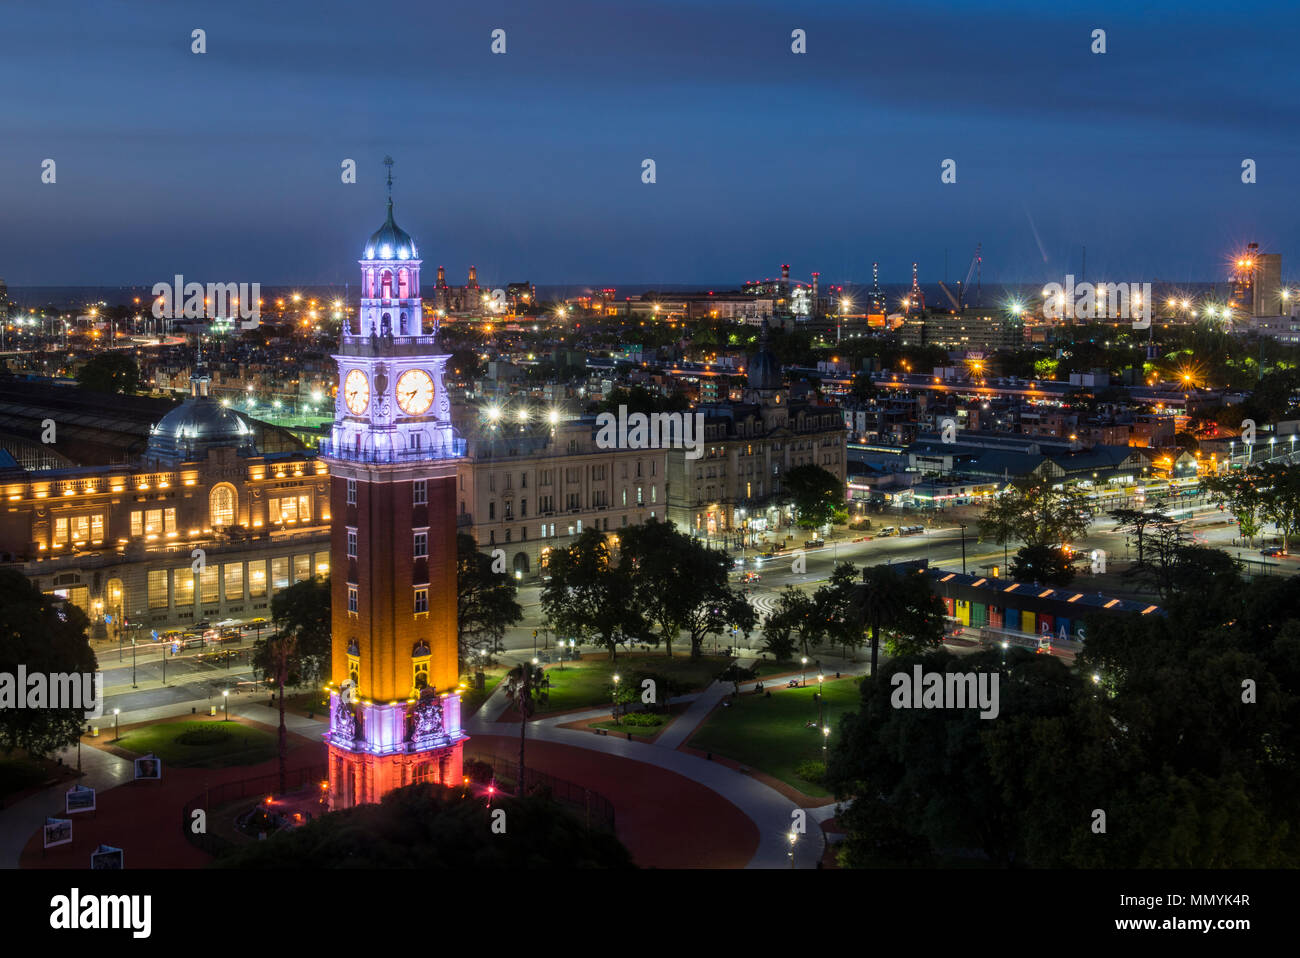 Argentina, Retiro, Buenos Aires, San Martin Square. Plaza Fuerza Aerea Argentina formerly Plaza Britanica. Night overview of Tower Monument aka Torre  - Stock Image